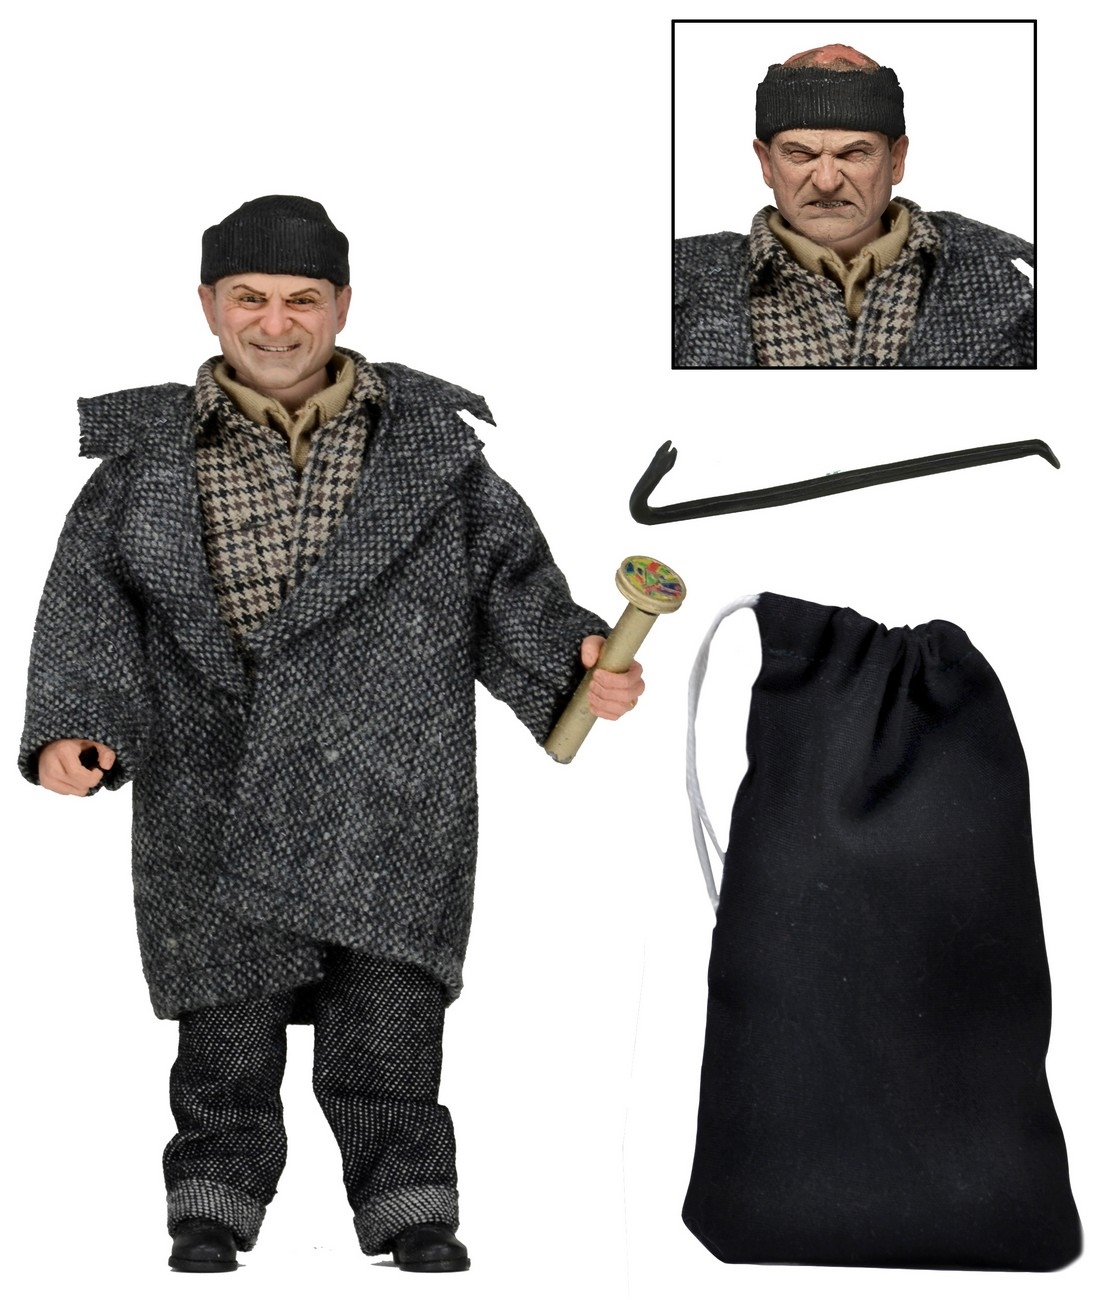 8″ Clothed Action Figures